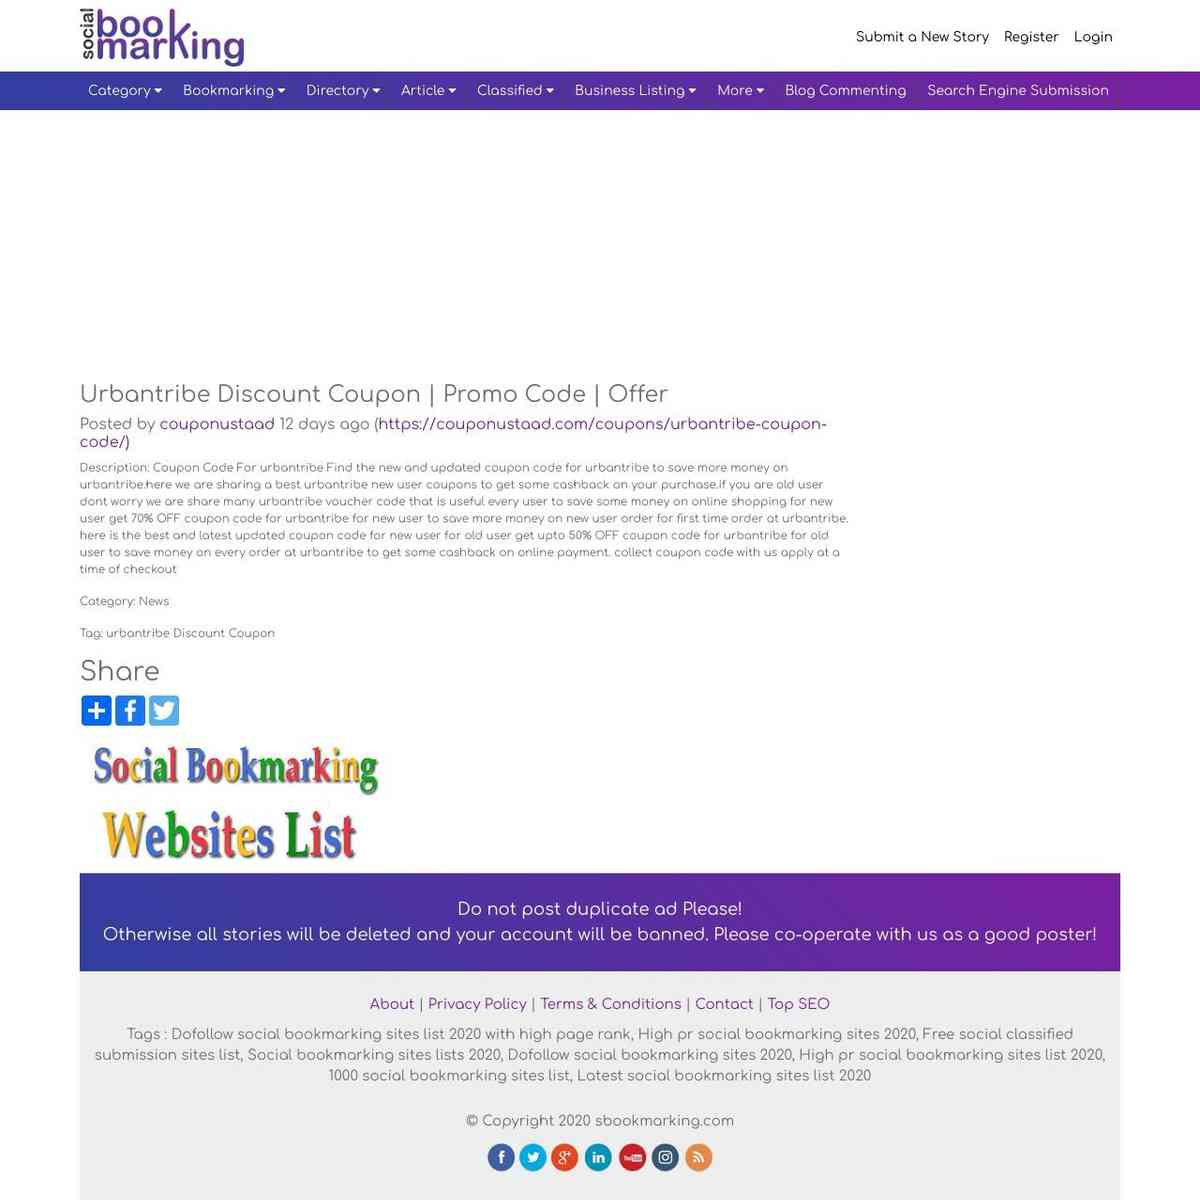 sbookmarking.com/story/urbantribe-discount-coupon-promo-code-offer